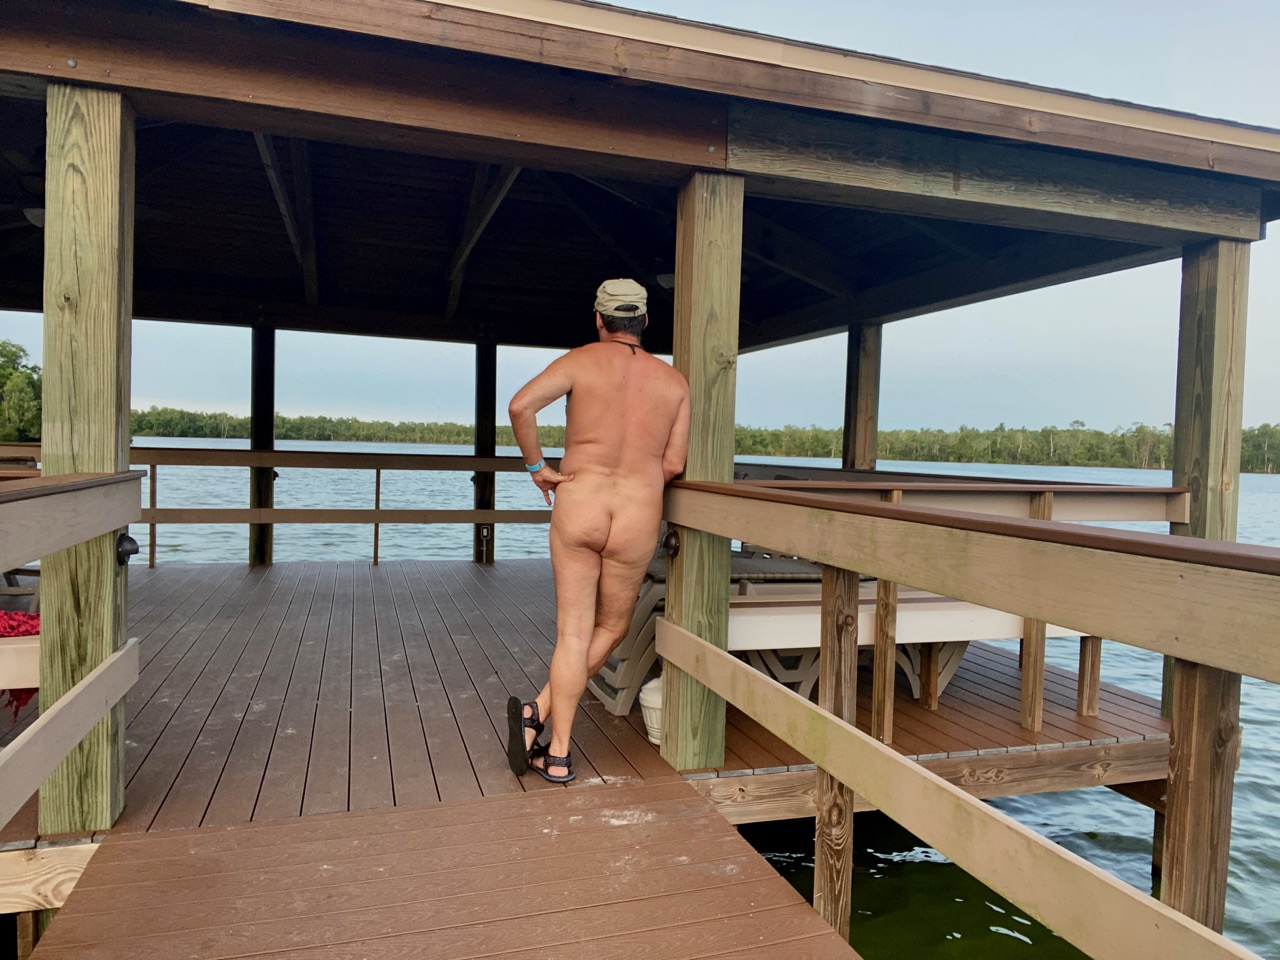 NAKED IN AMERICA: Cypress Cove Nudist Resort